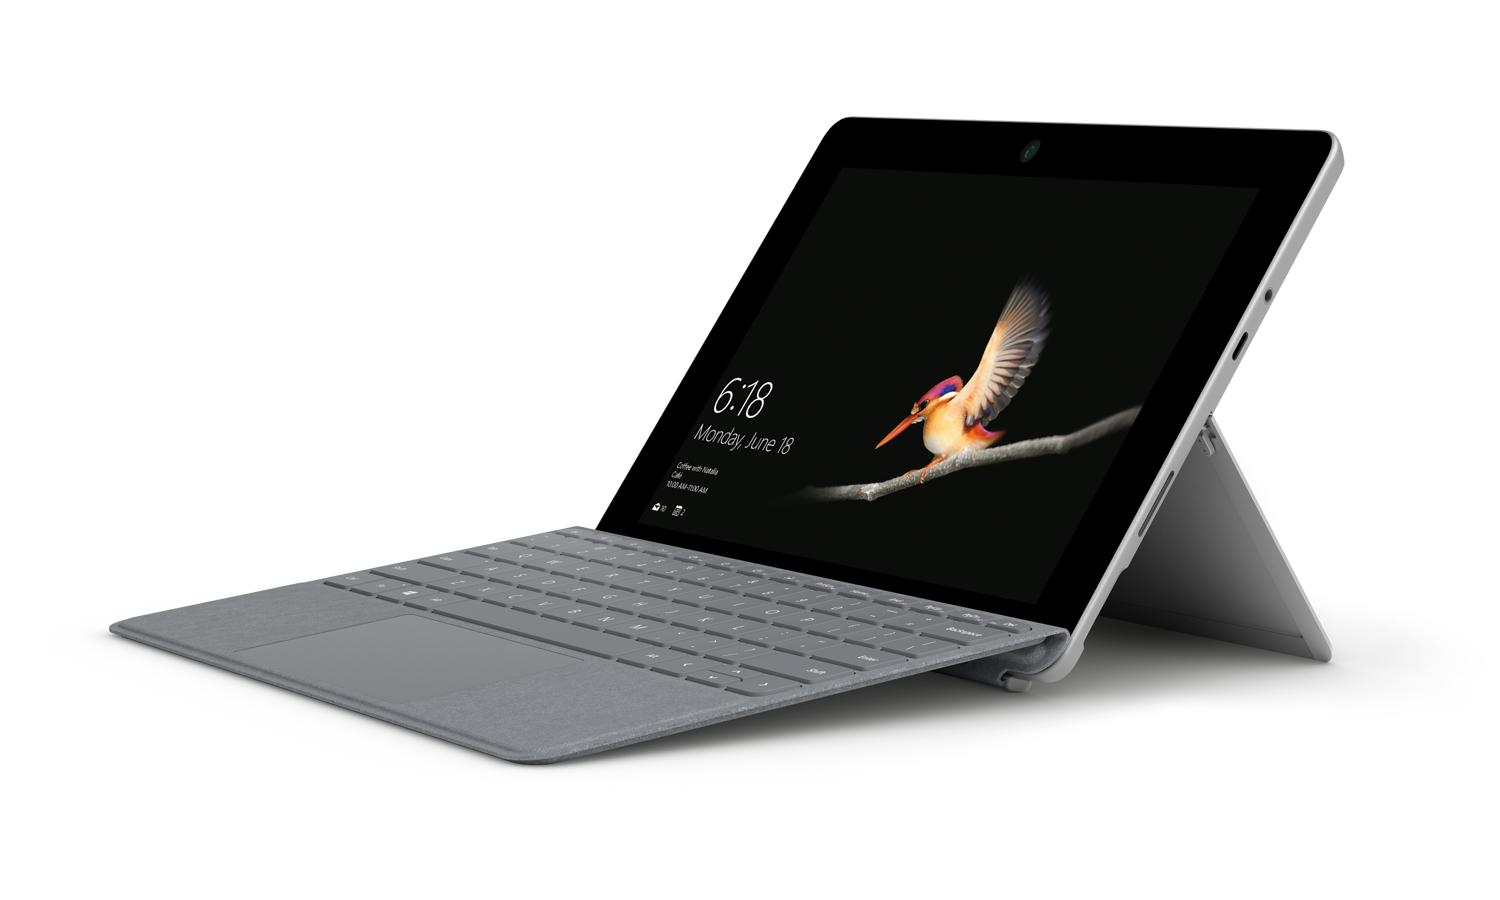 A Surface Go with type cover